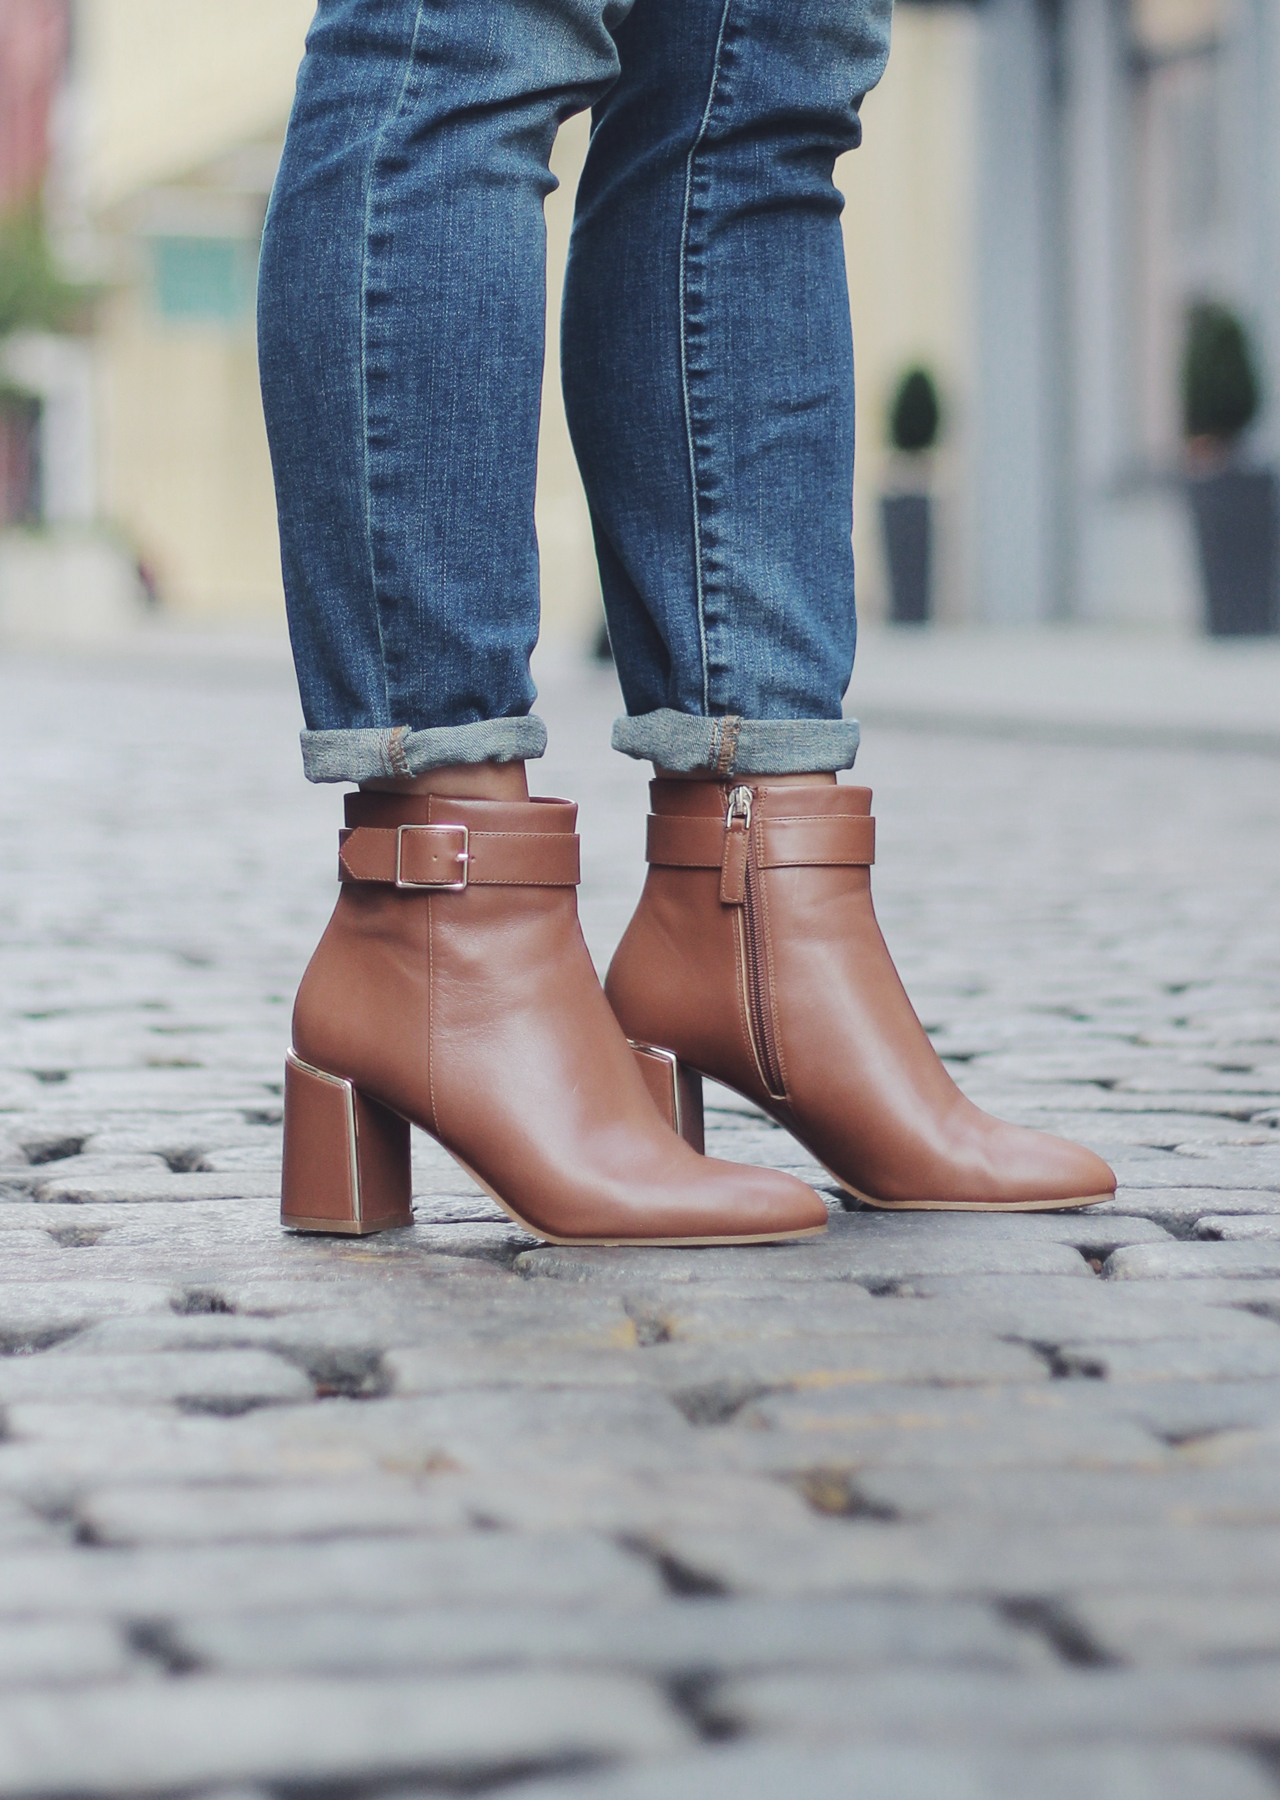 The Steele Maiden Fall Style - Talbots Leather Ankle Boots